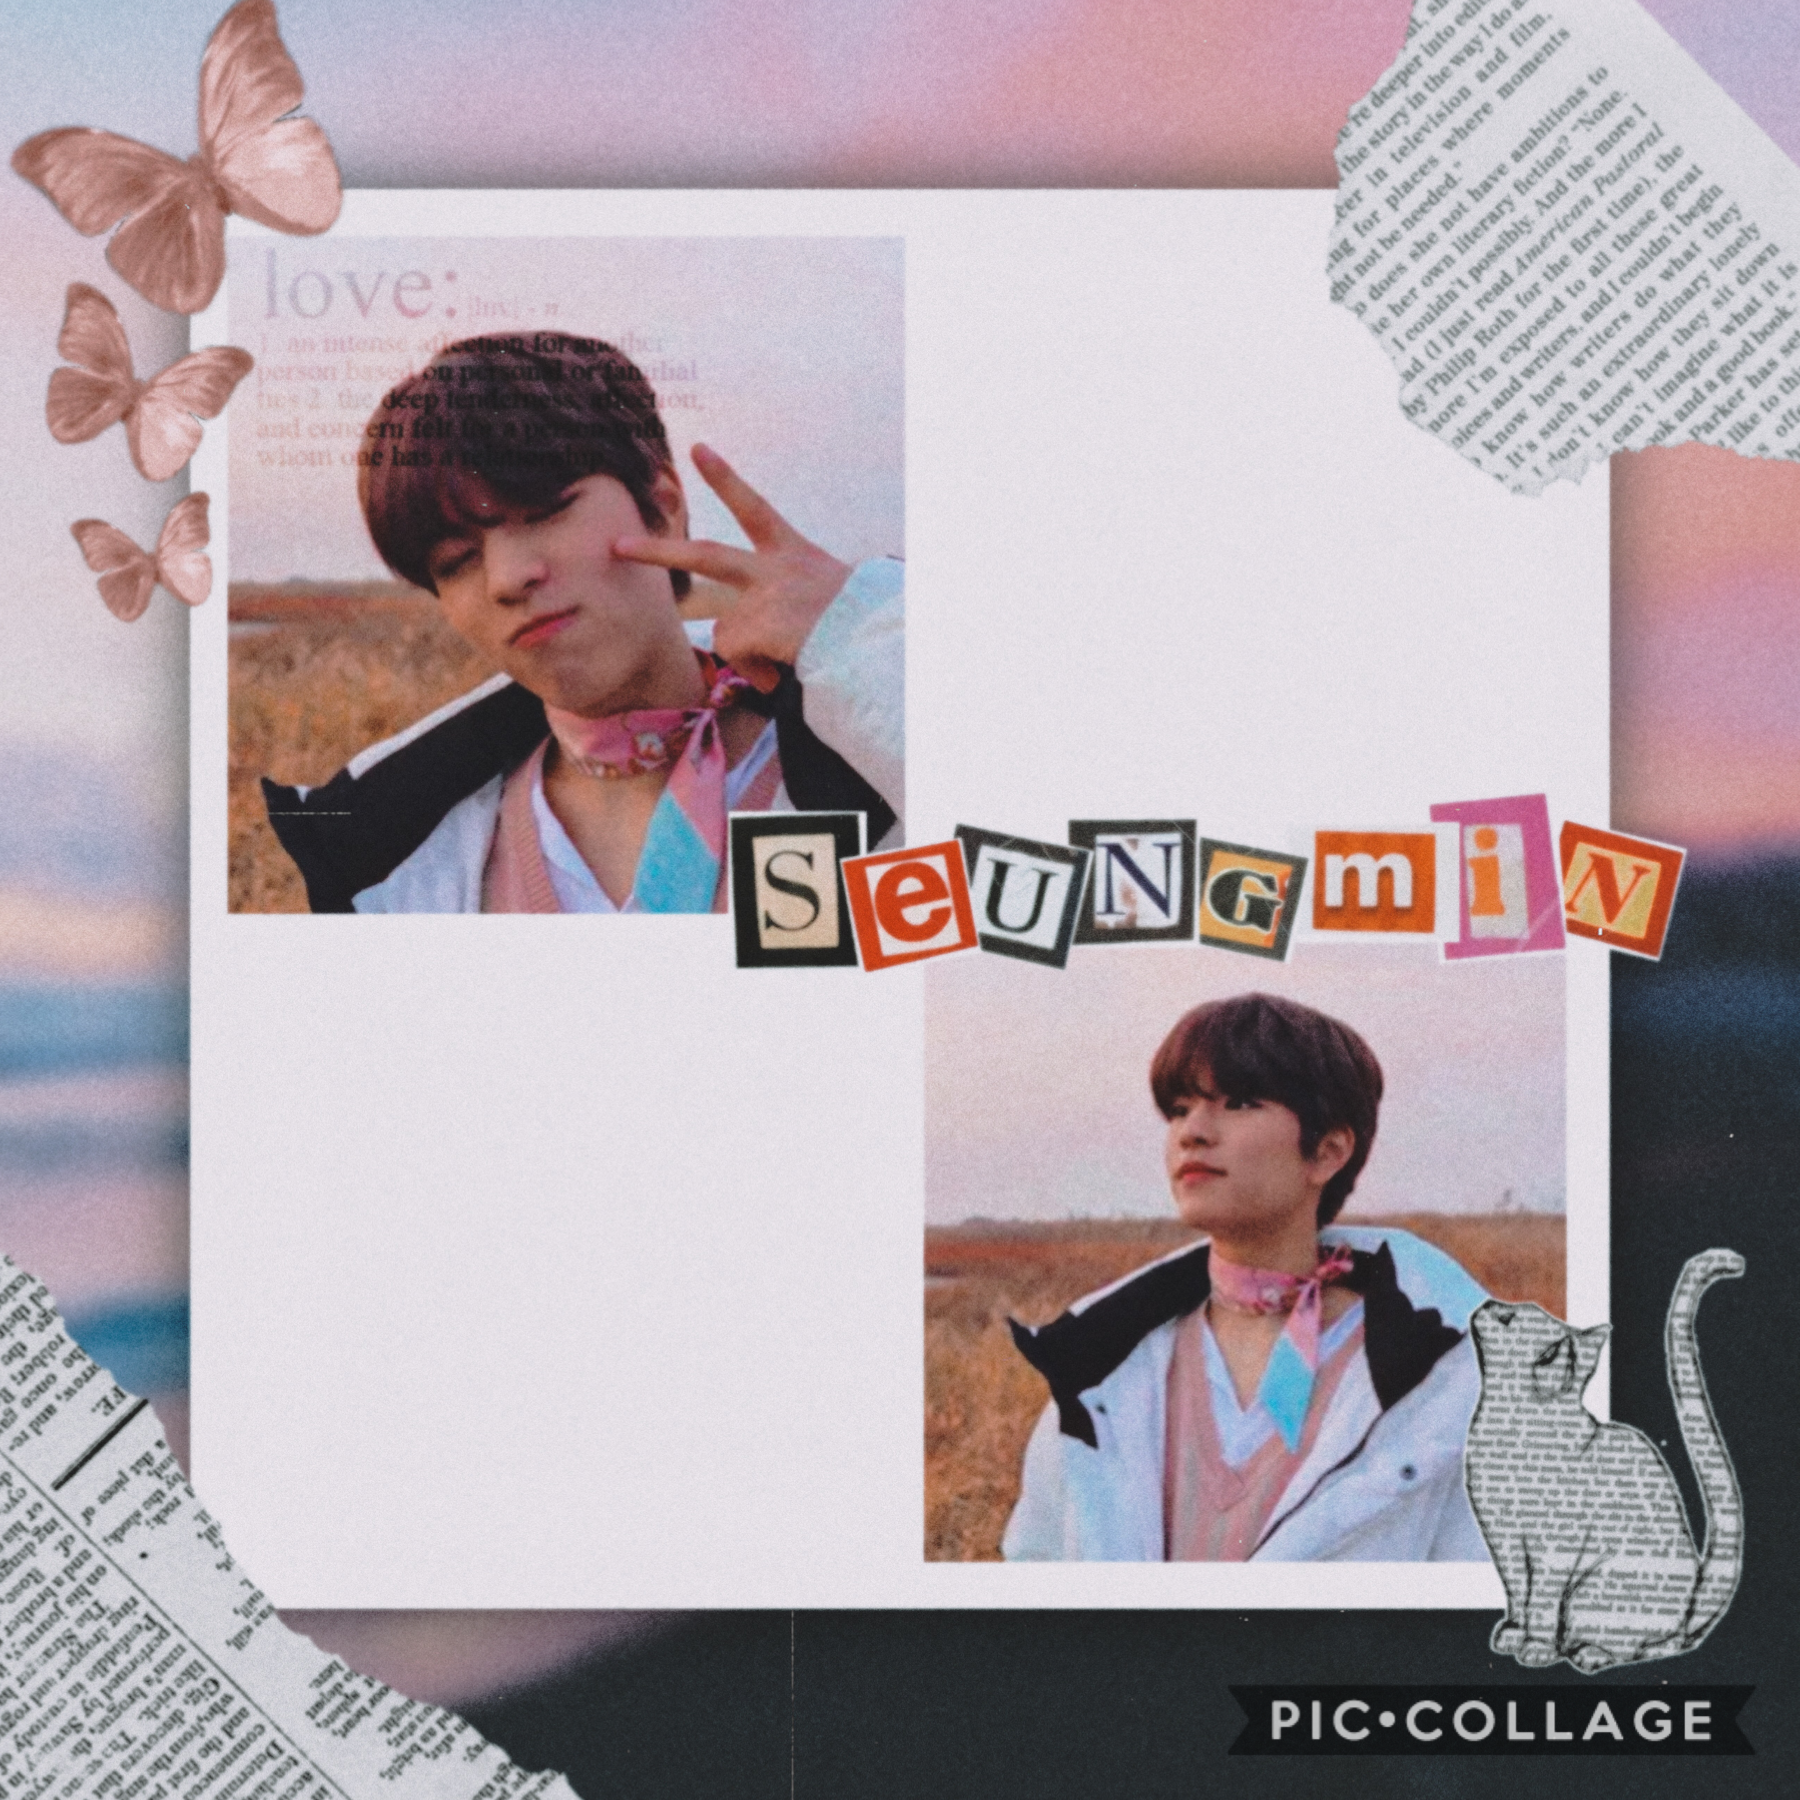 - 💖 -  Seungmin because Seungmin.  Man the only thing I like about this is the 2 pics 😂  The rest is just- 🤮